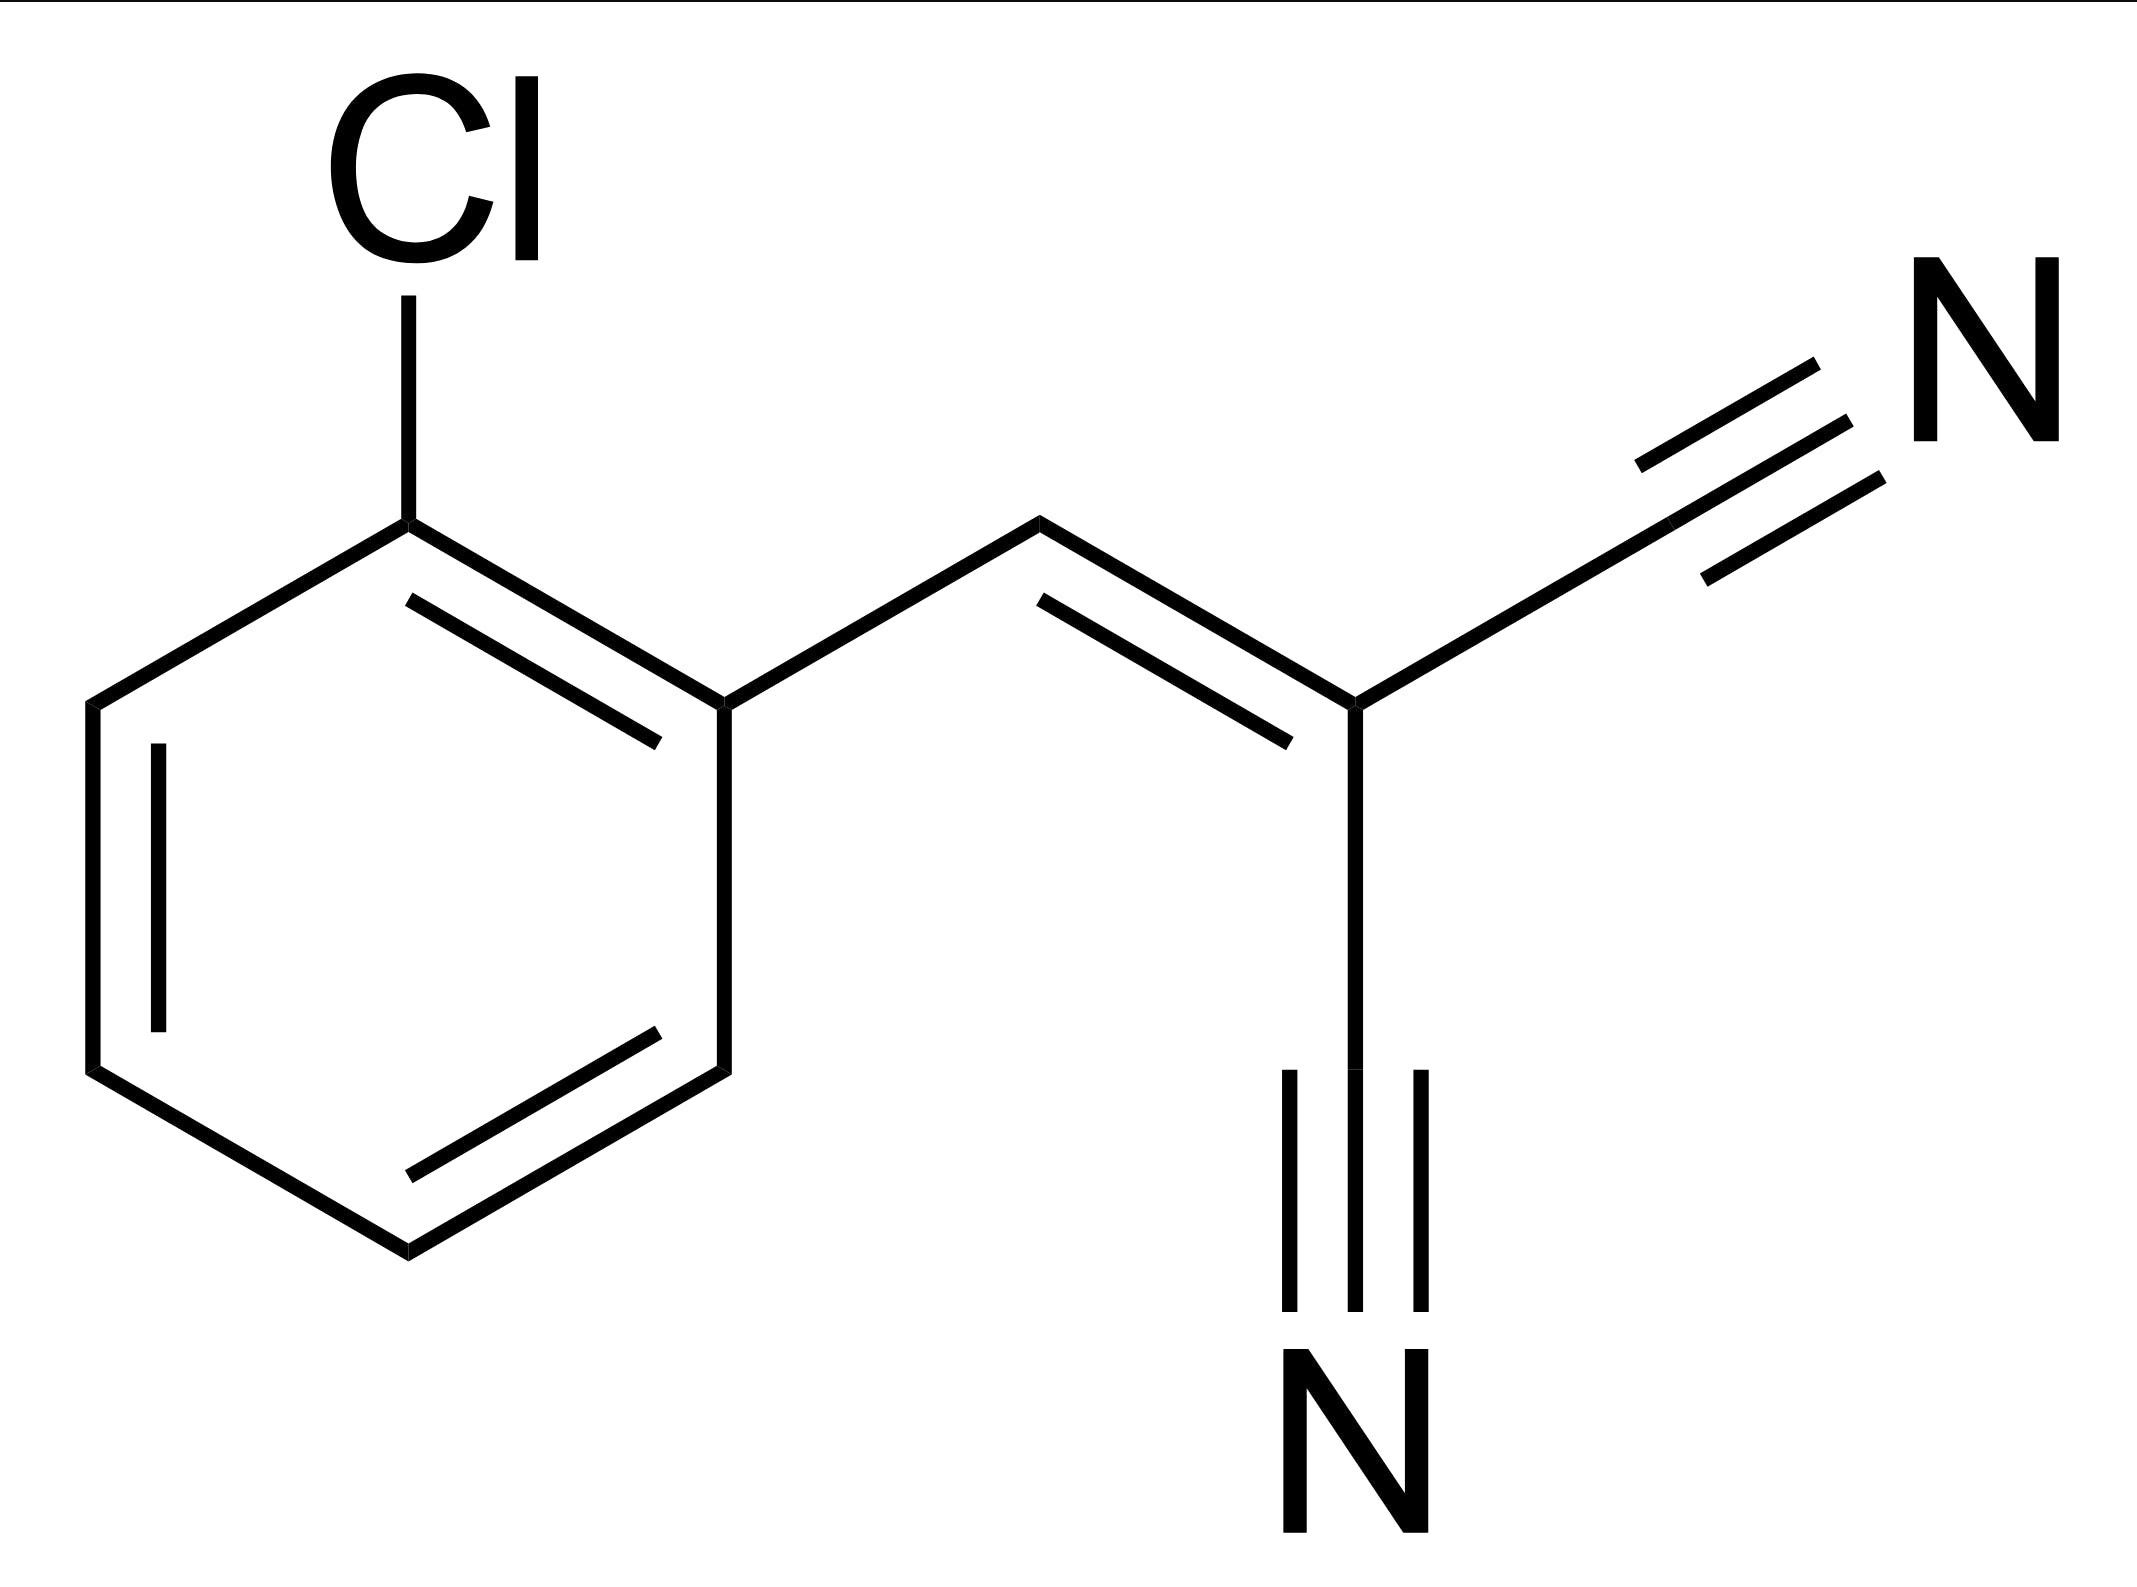 The chemical structure of tear gas irritant 2-chlorobenzalmalononitrile